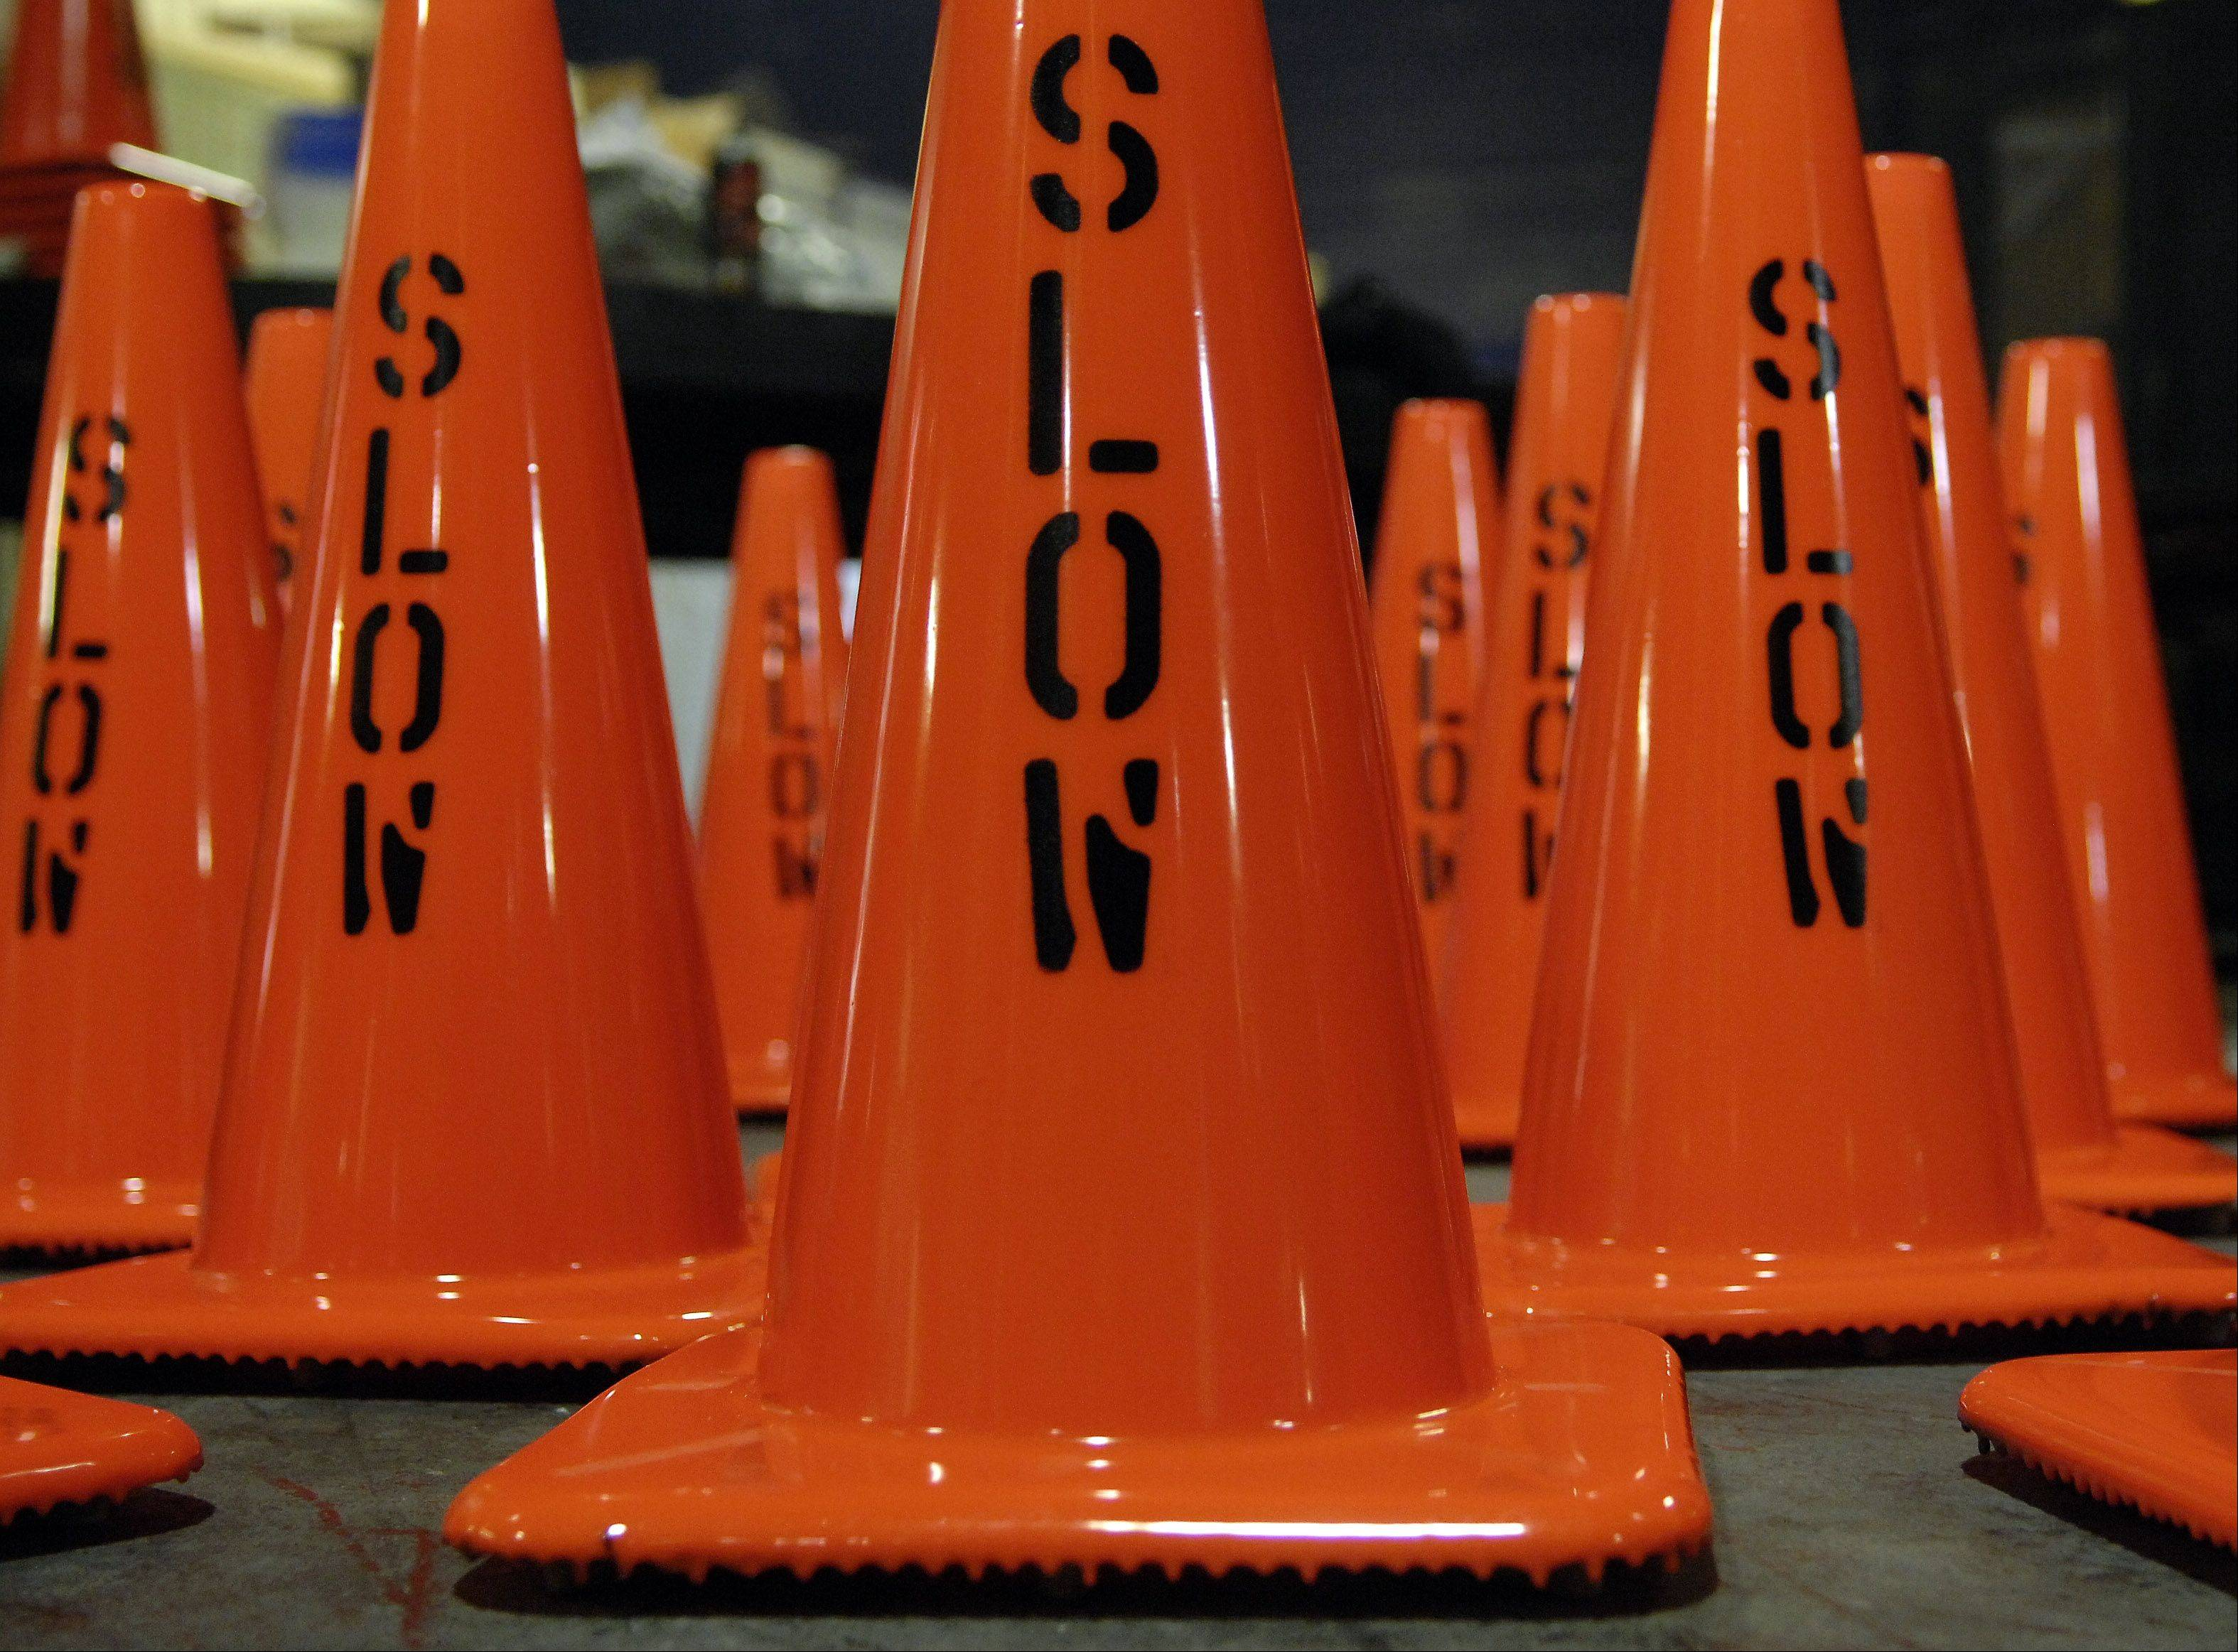 Production is anything but slow at Work Area Protection Corp. in St. Charles. The produce and sell over 1.6 million cones a year.